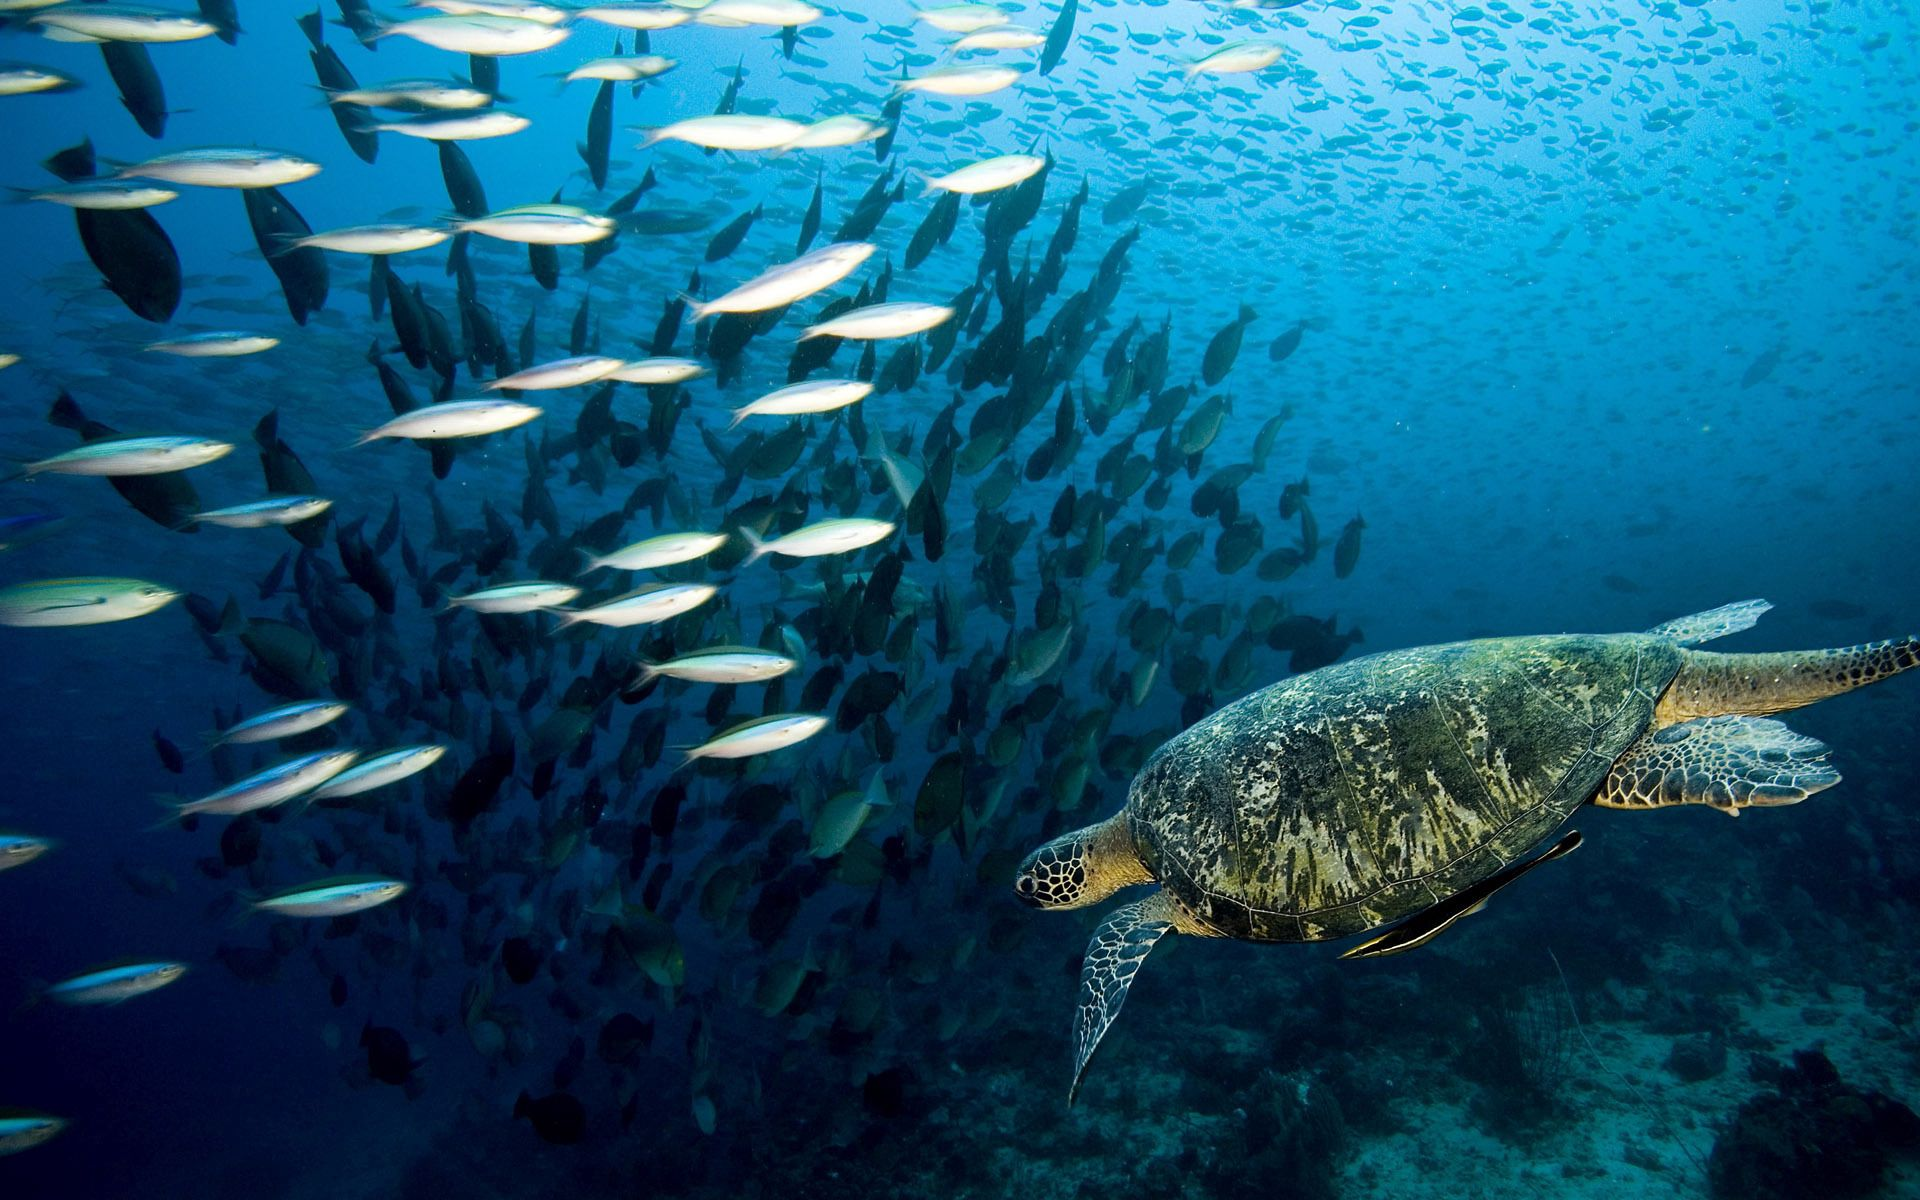 138955 download wallpaper Animals, Turtle, Underwater World, To Swim, Swim, Sea, Ocean, Fishes screensavers and pictures for free